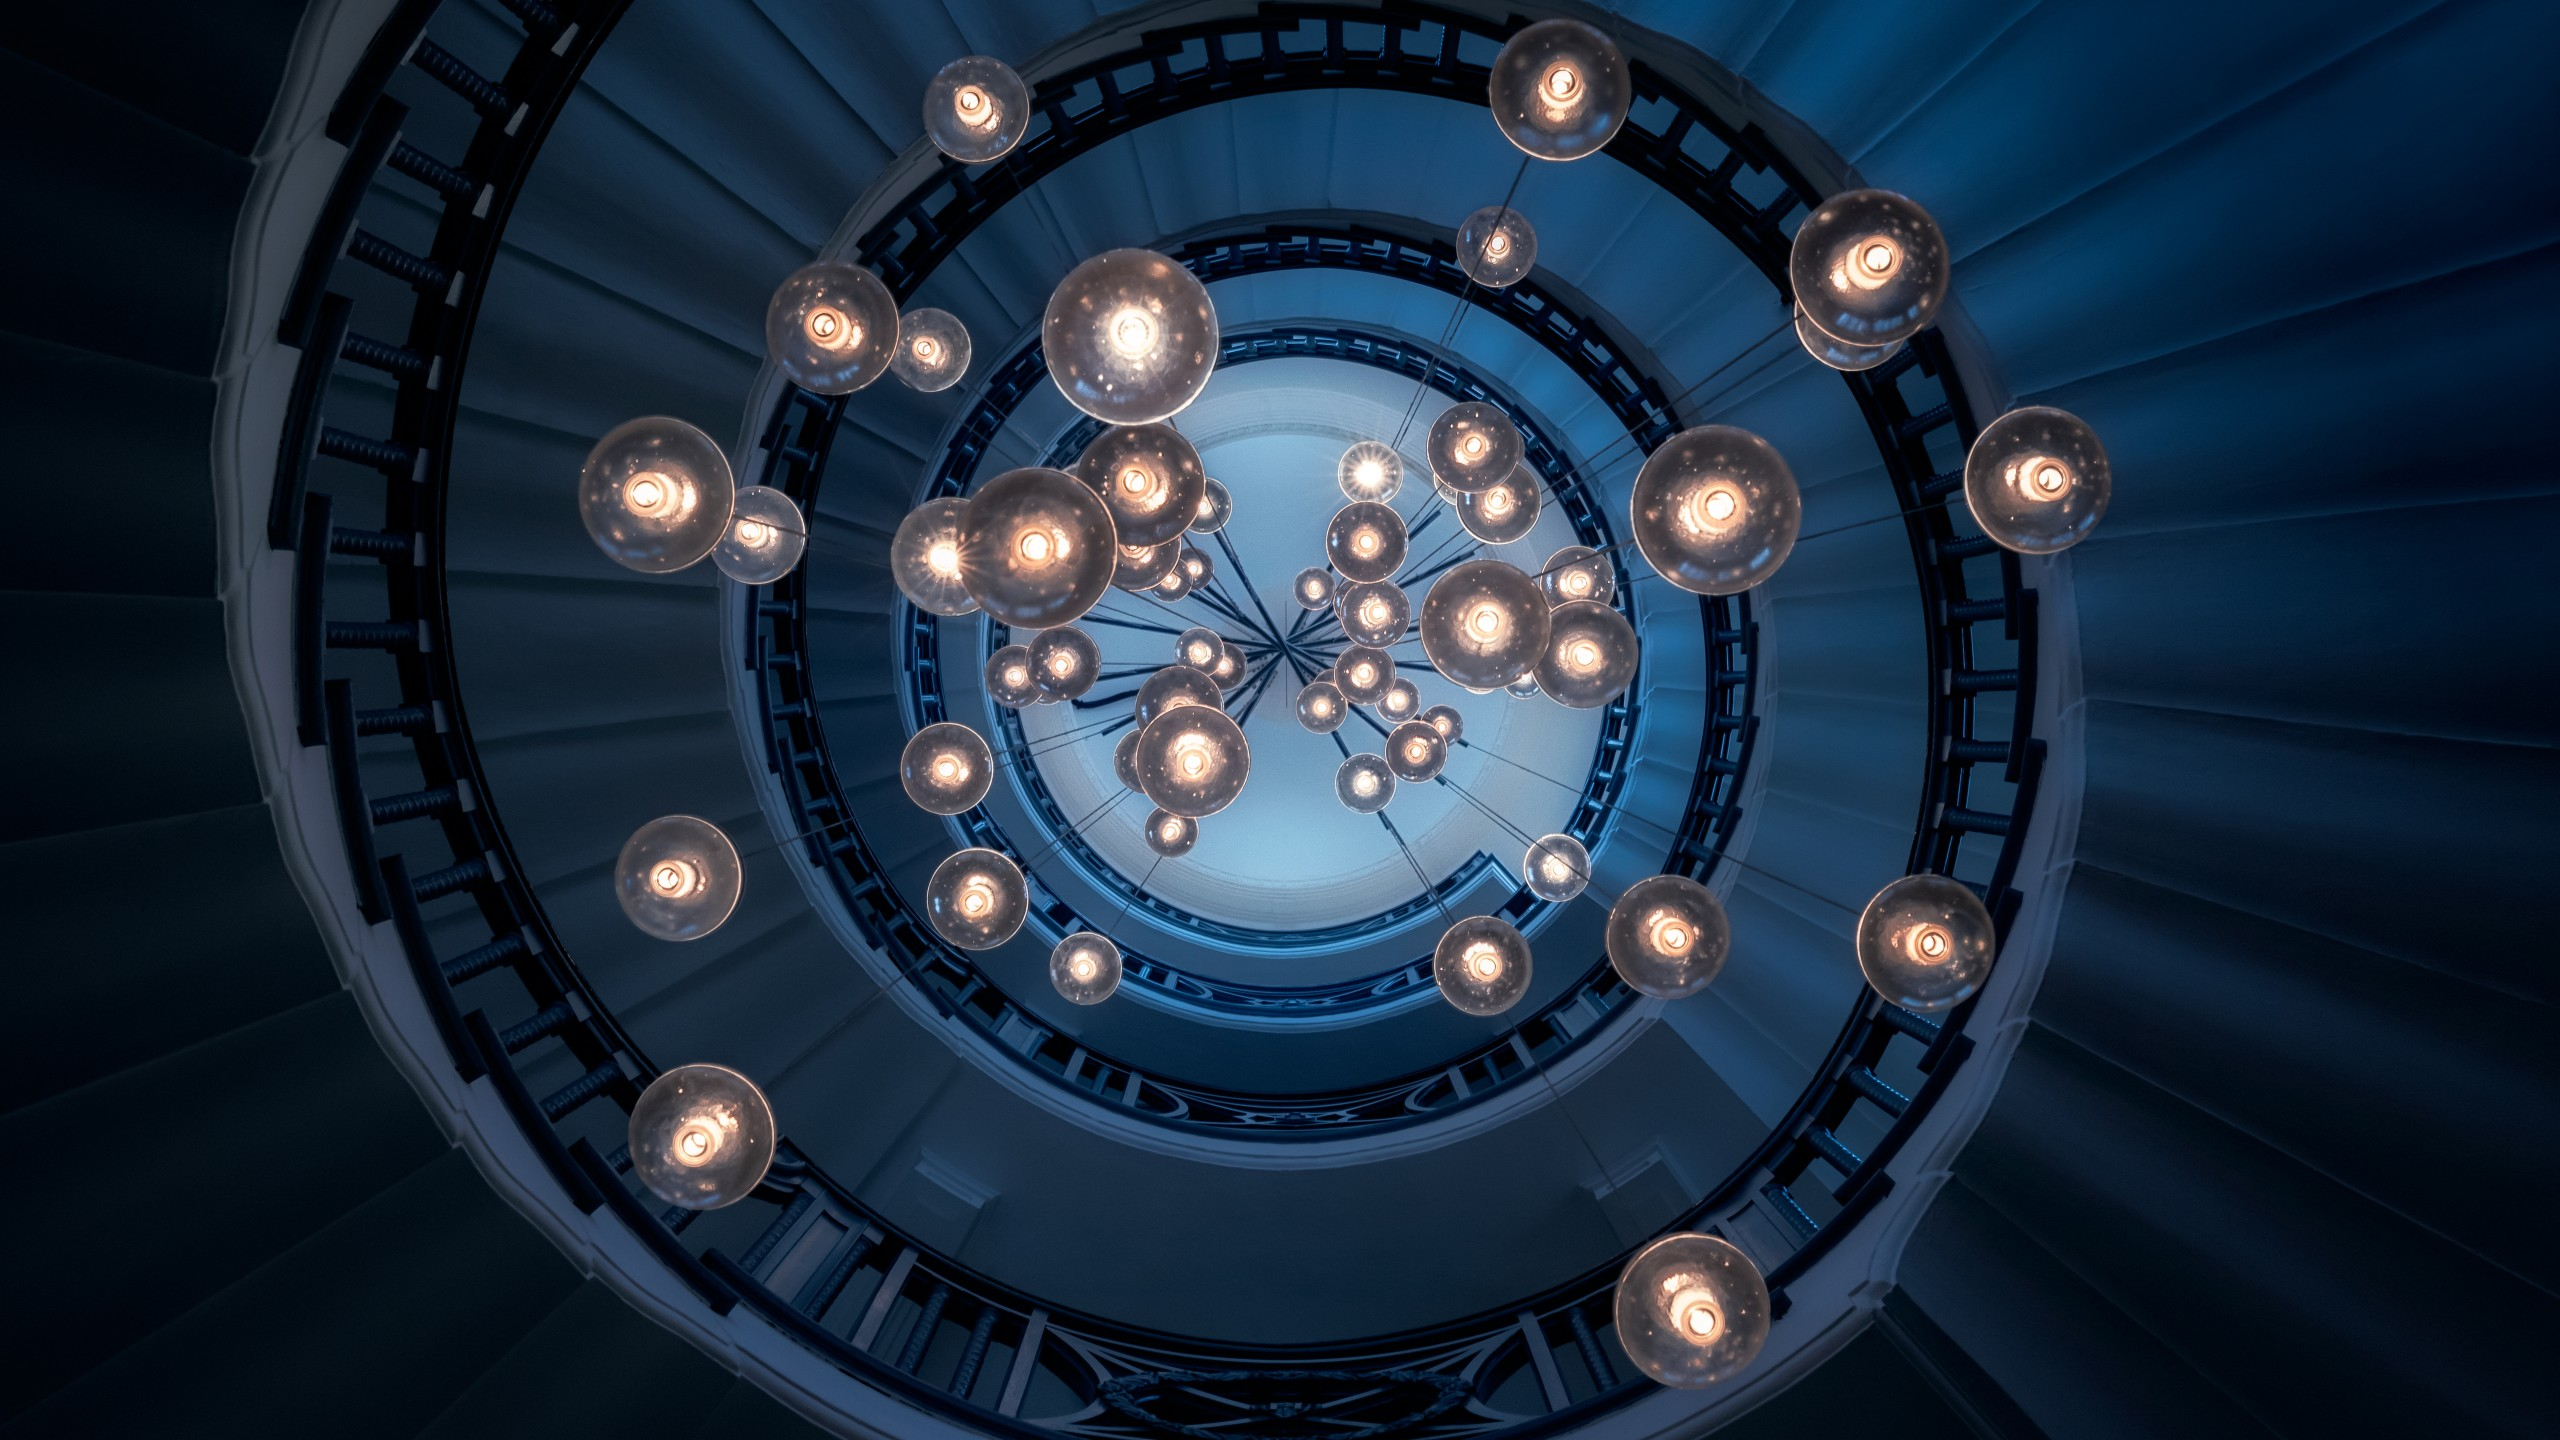 Tottenham Iphone 4 Wallpaper Spiral Staircase 4k Wallpapers Hd Wallpapers Id 21951